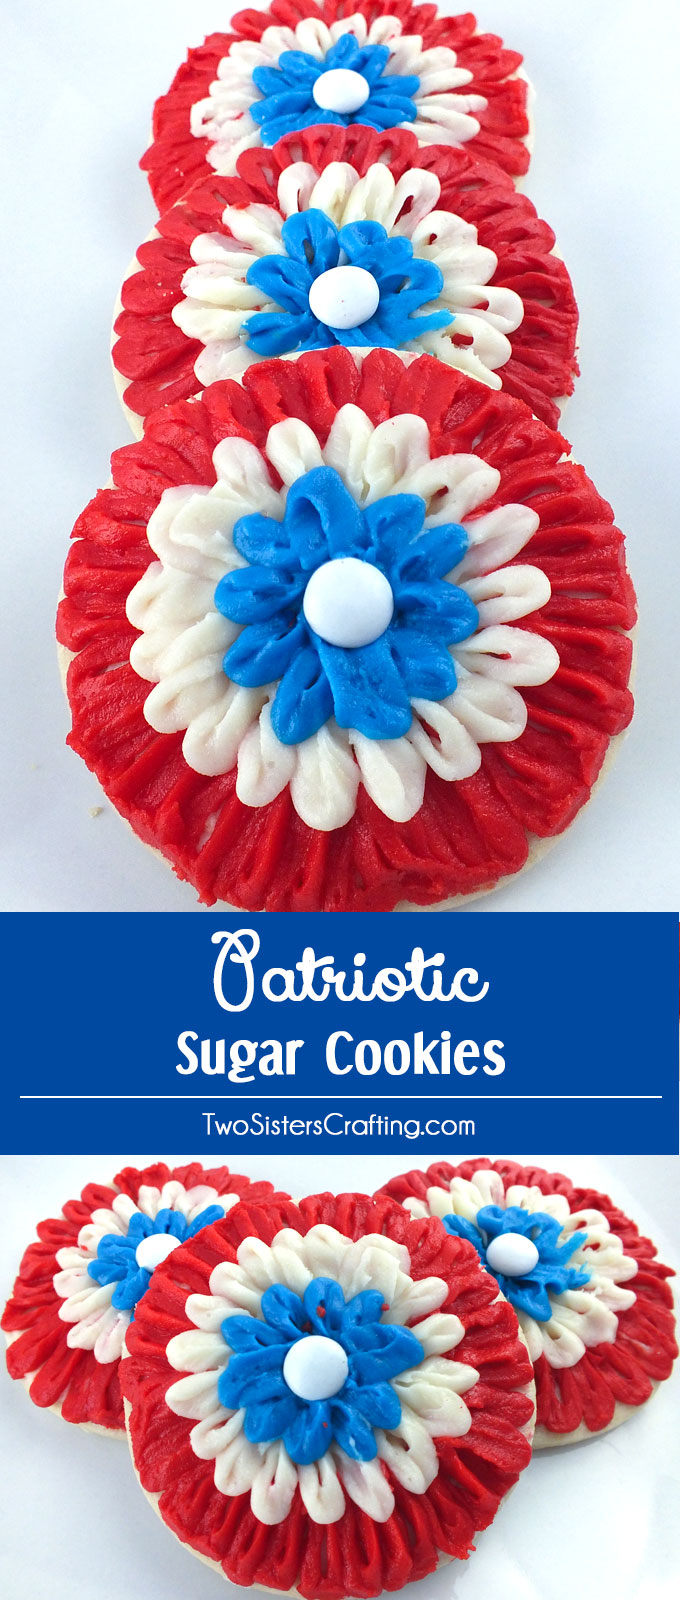 We've found 15 of the Best 4th of July Cookies.  These red, white and blue desserts will wow your guests at your Fourth of July party or summer family BBQ! These 15 yummy Patriotic Desserts are delicious 4th of July treats.  Pin these easy to make Independence Day cookies for later and follow us for more 4th of July Food Ideas.